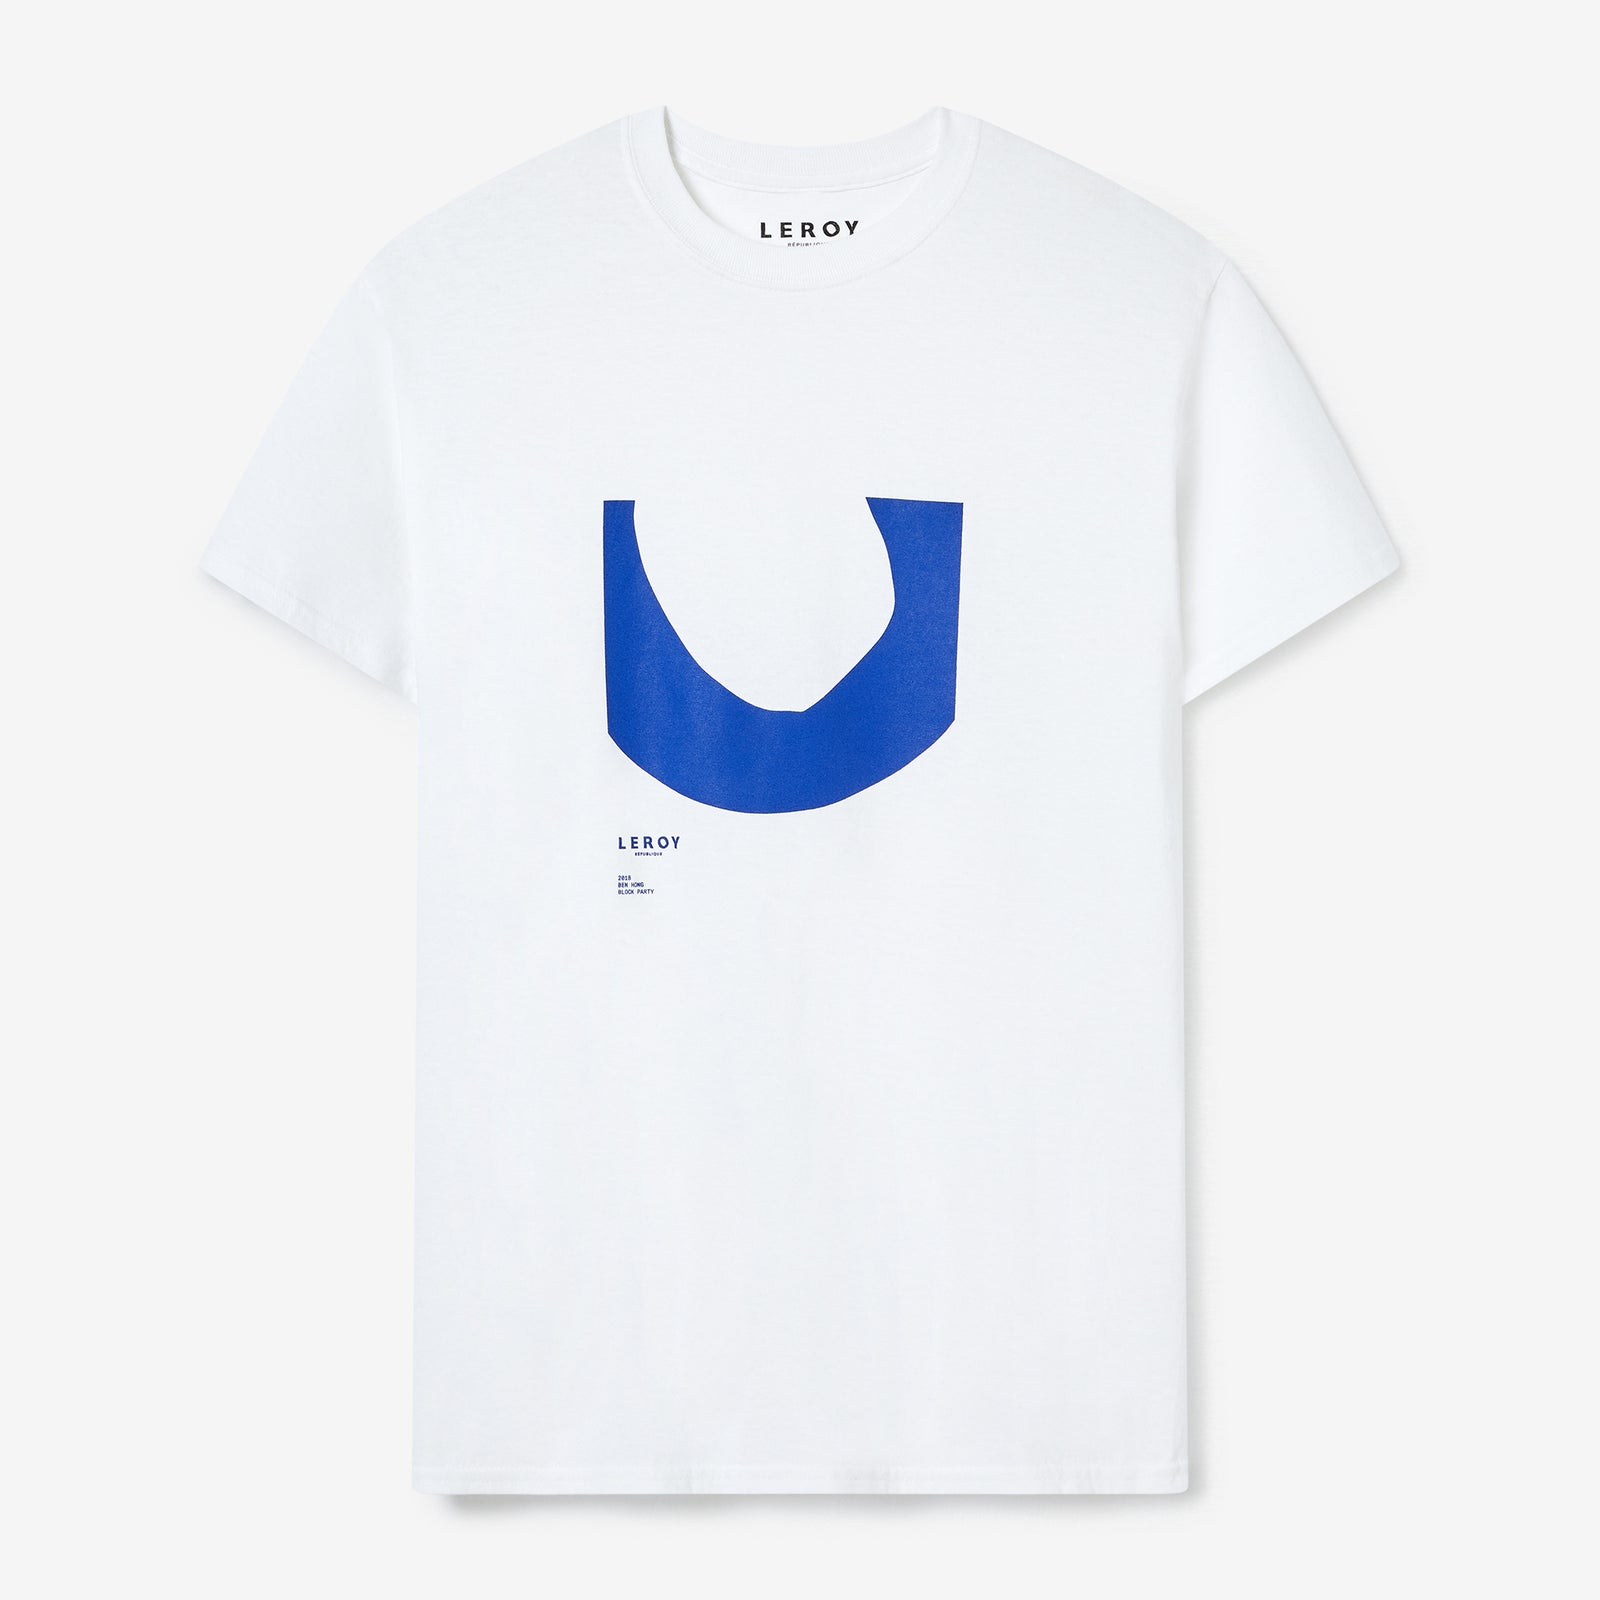 Ditch klein blue T-shirt